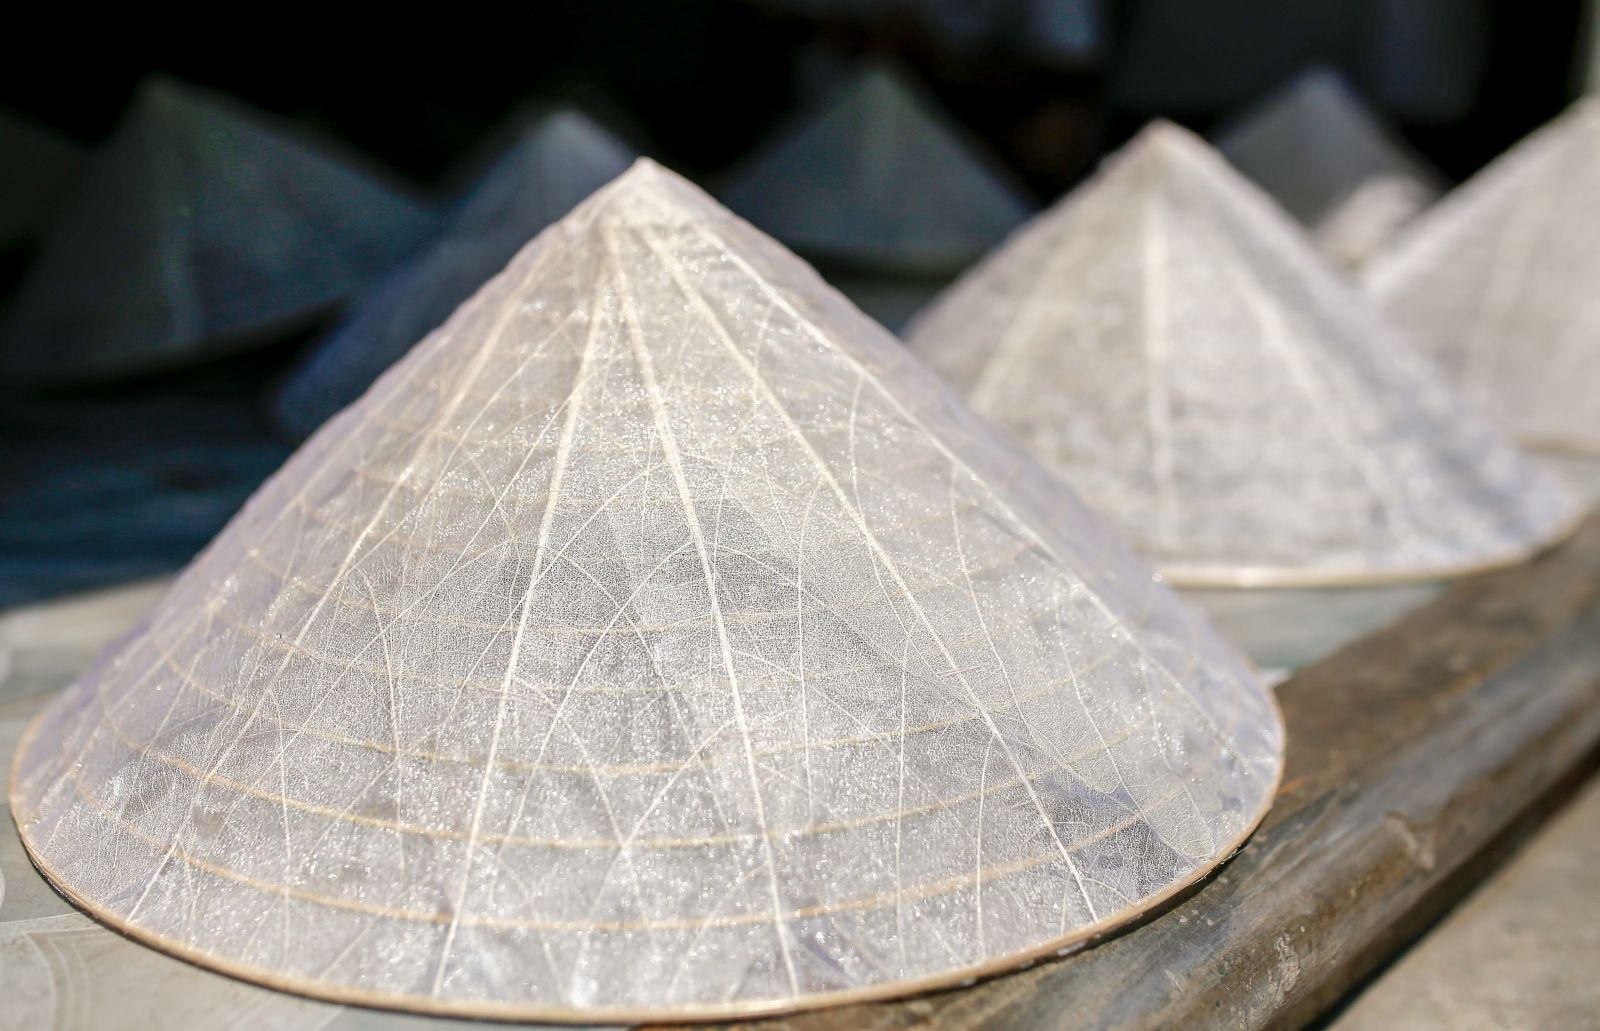 The transparent leaf veins conical hats are finished, with their strange beauty of elegance and luxury.